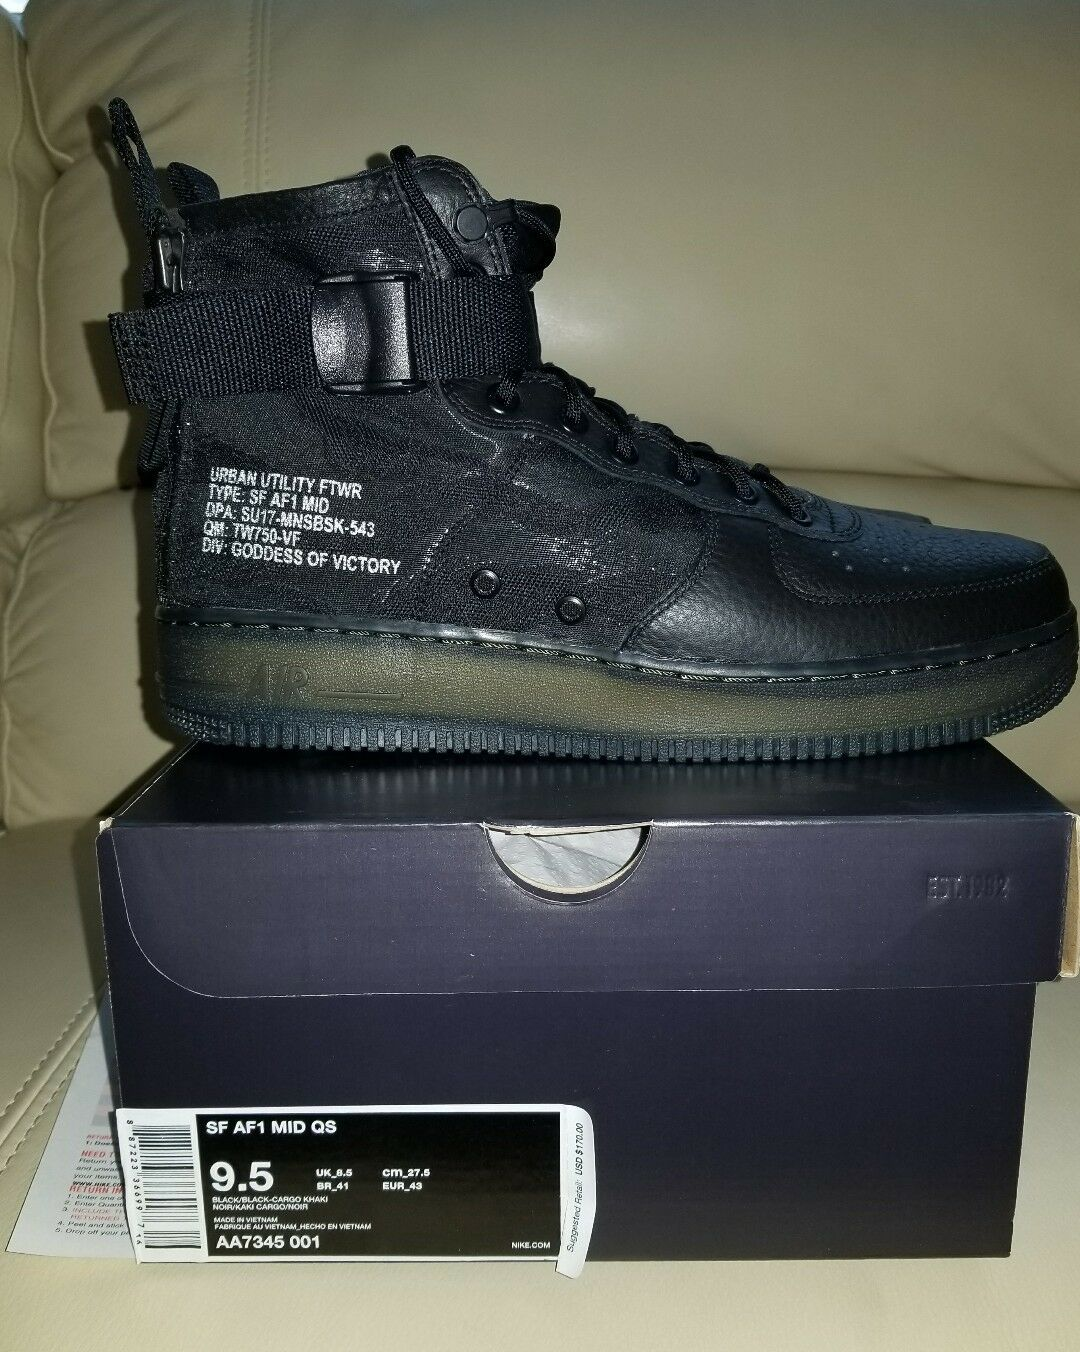 Nike Air Force 1 SF AF-1 Mid QS Black/Camo Boots/Sneakers 9.5